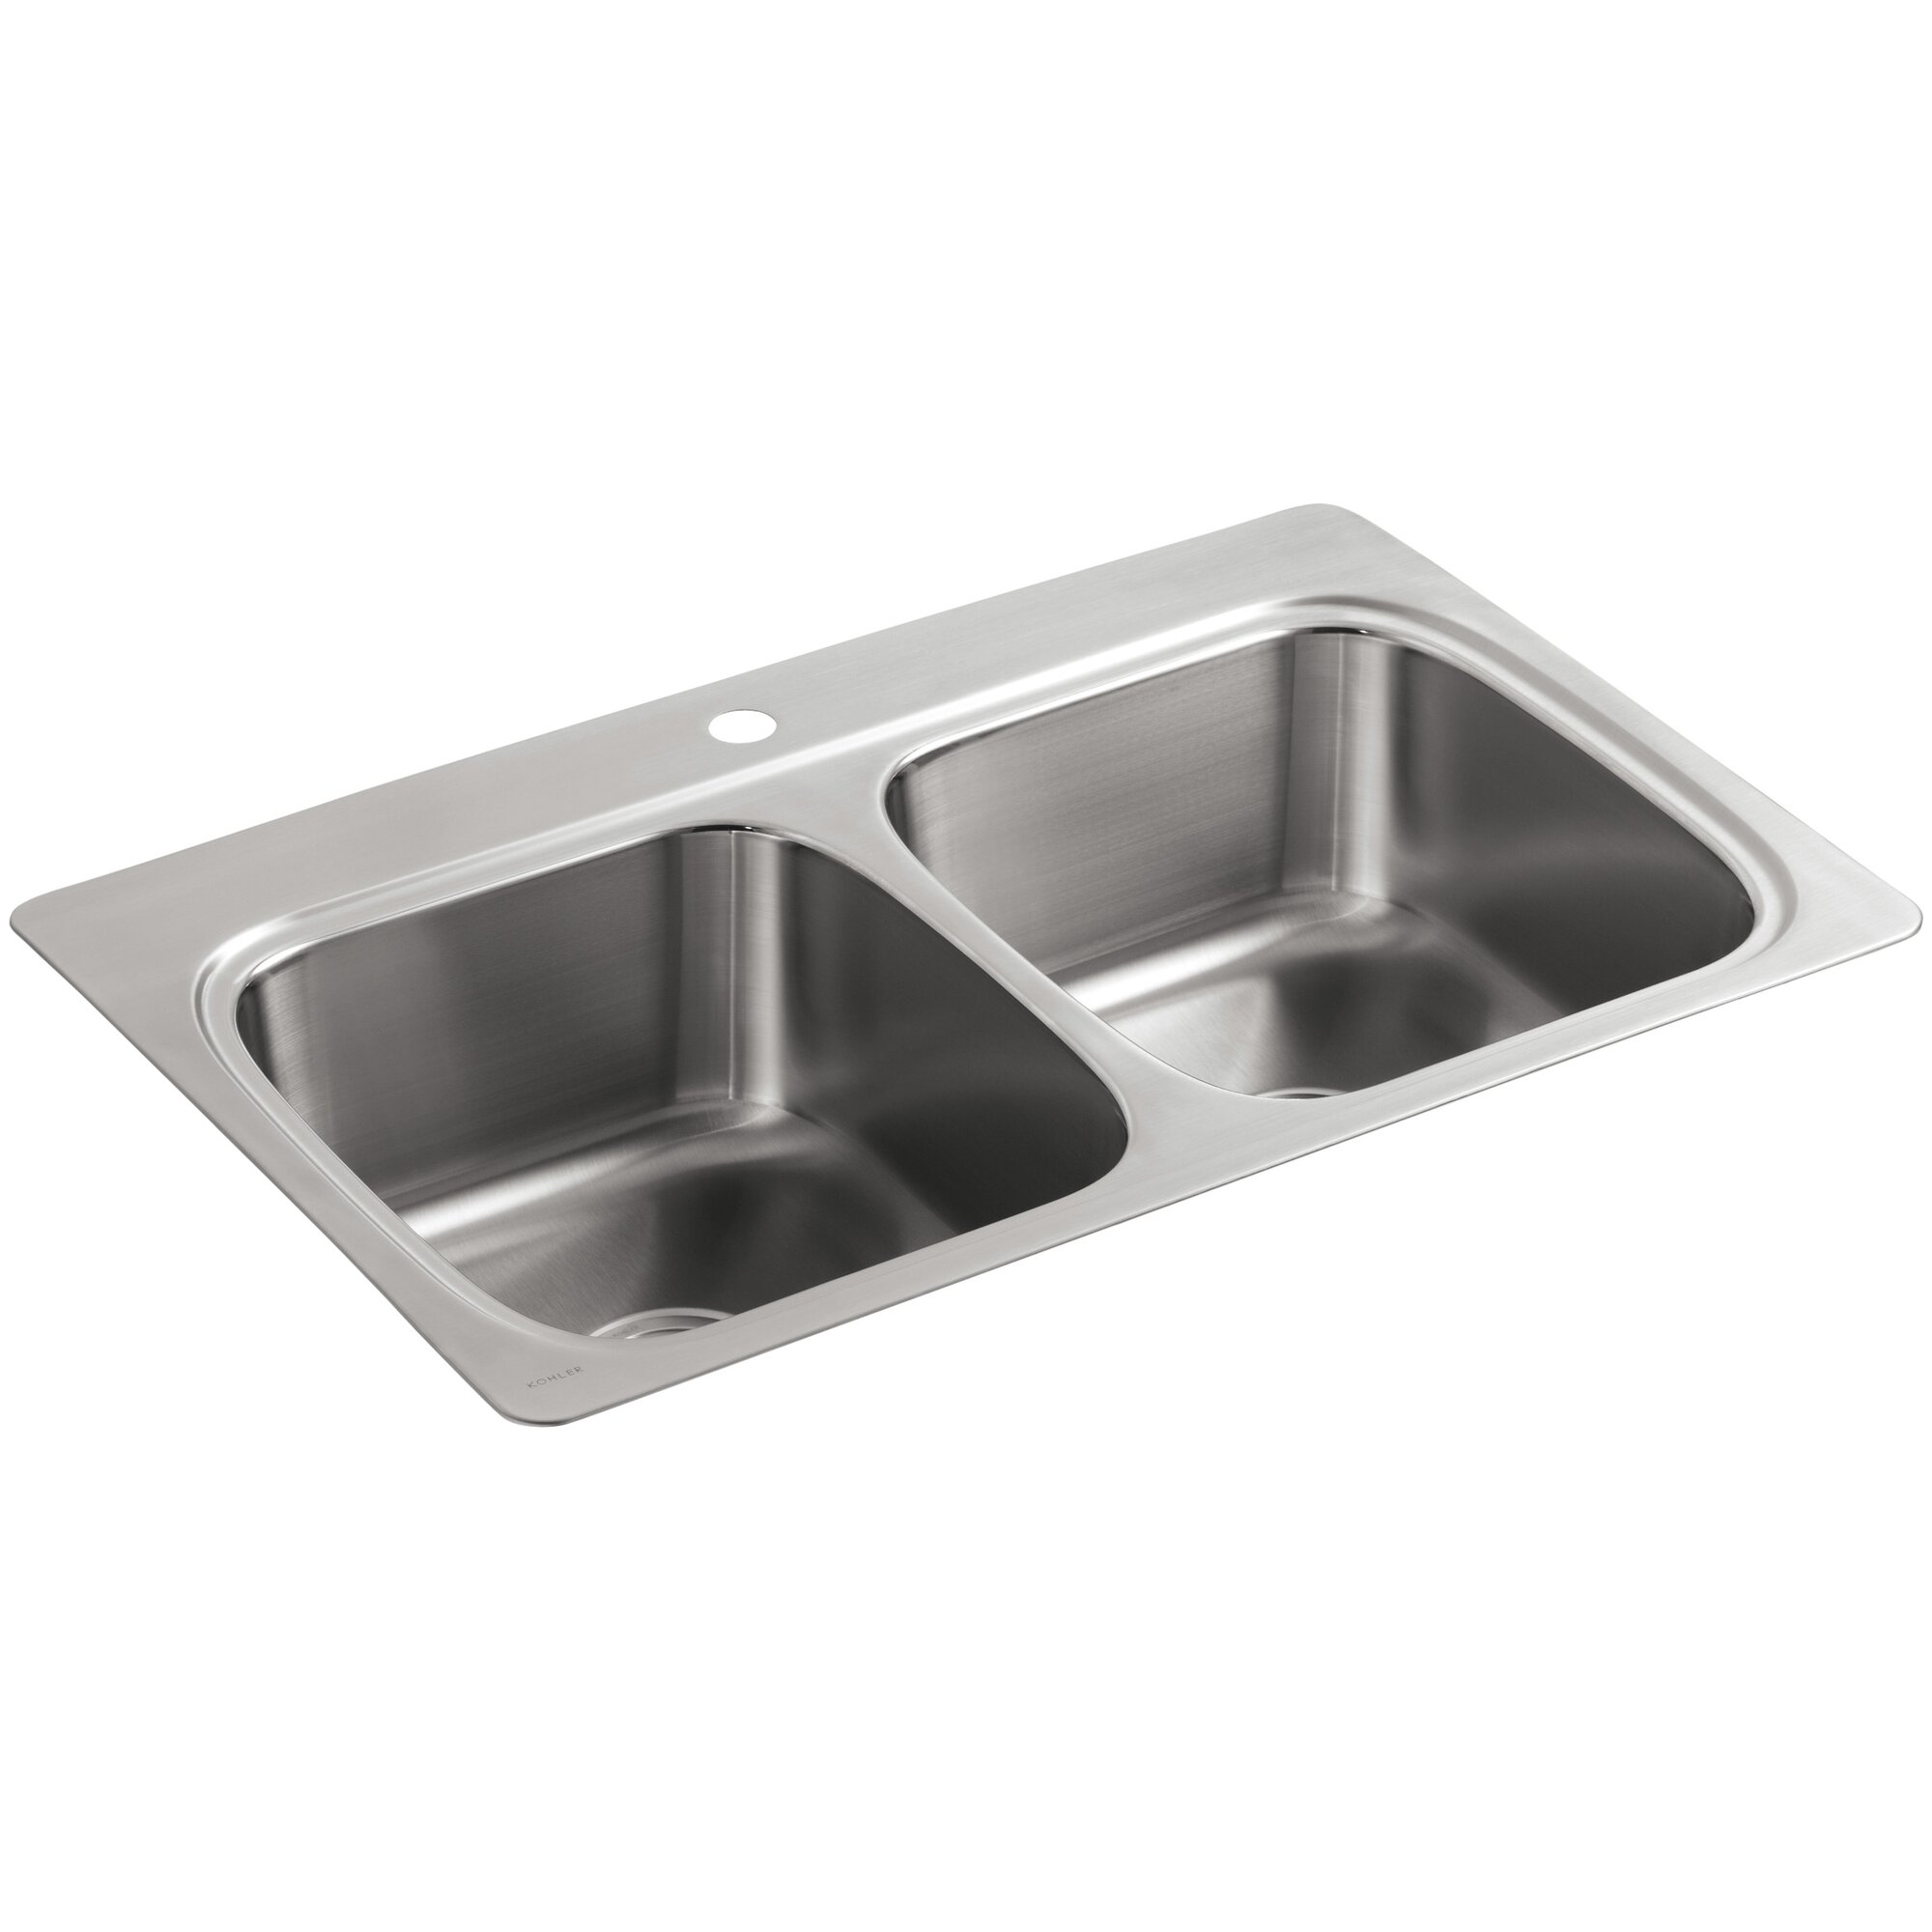 verse top mount double equal bowl kitchen sink with single faucet hole - Single Or Double Kitchen Sink